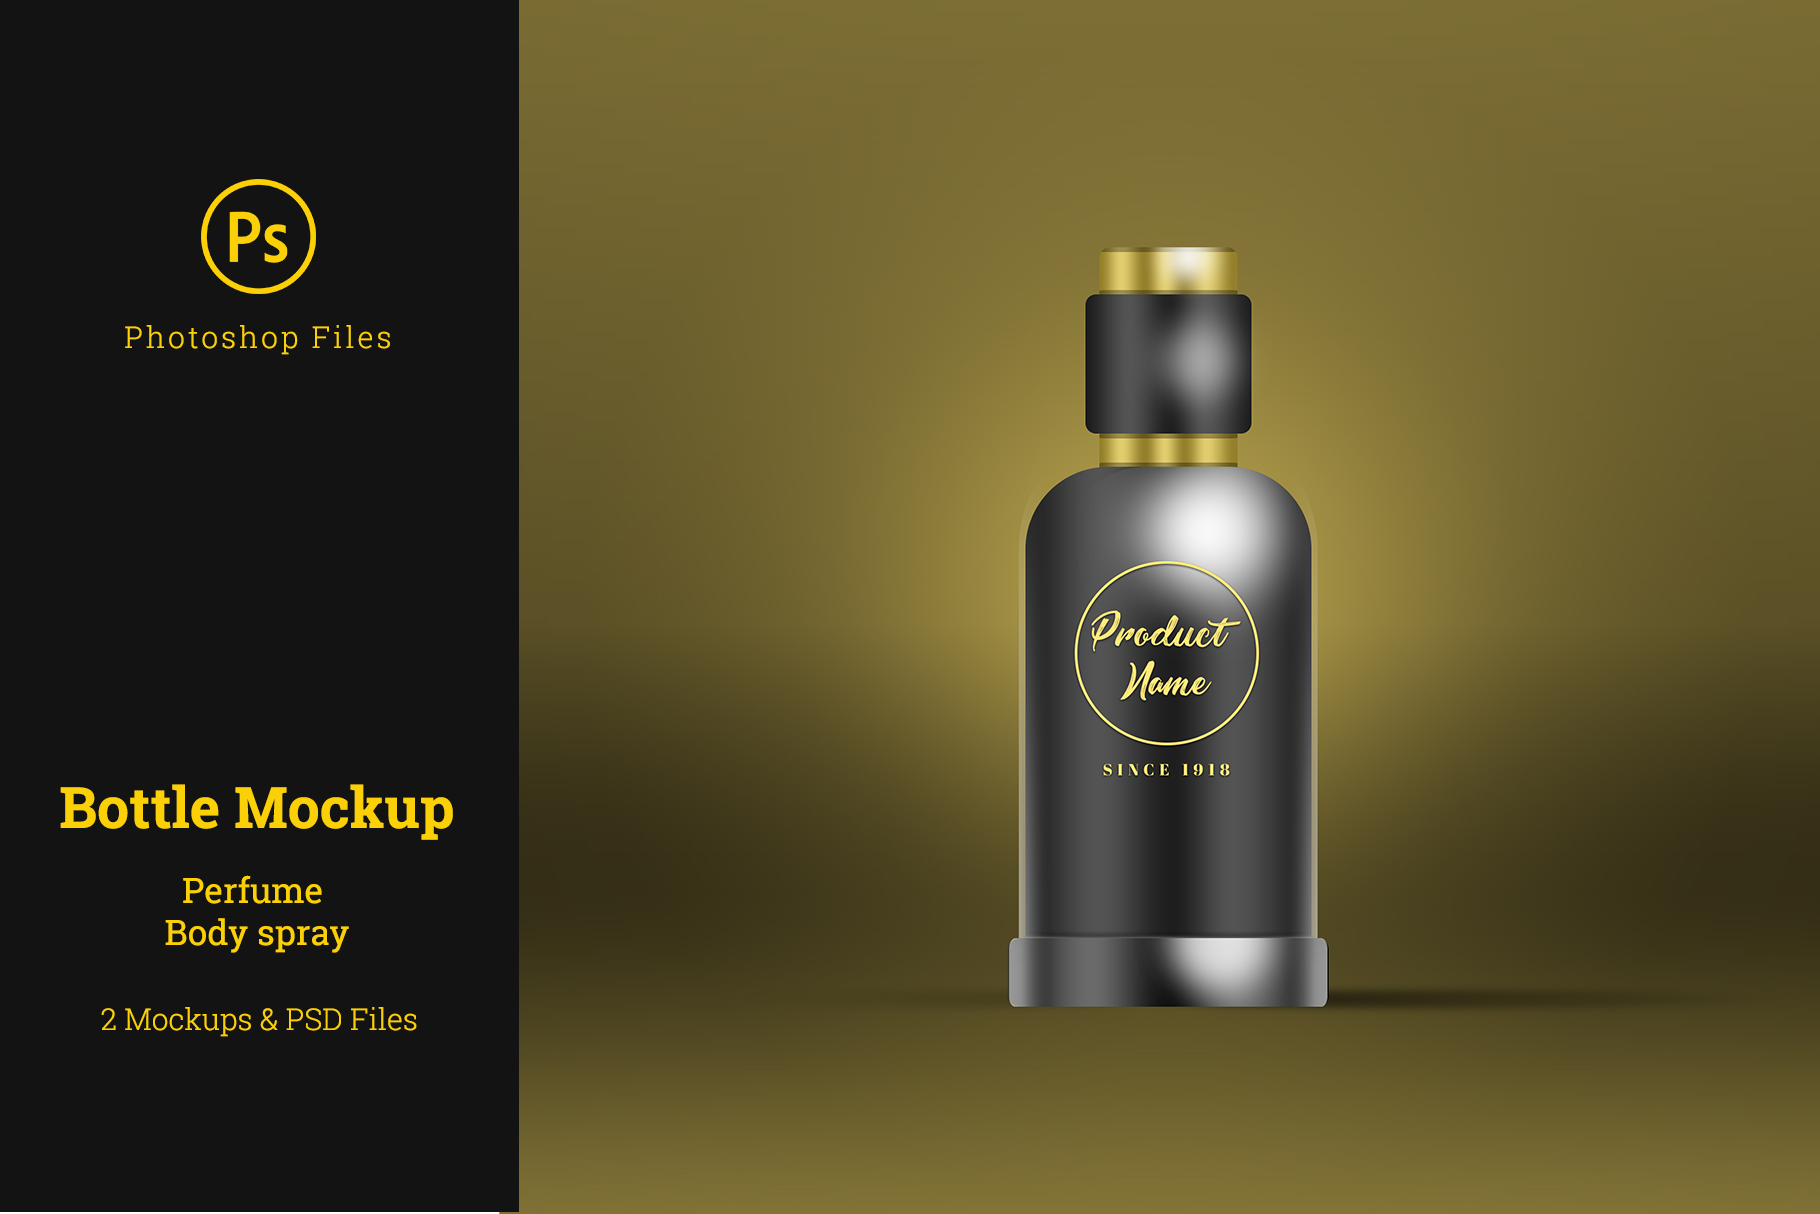 Perfume Bottle Mockup Photoshop